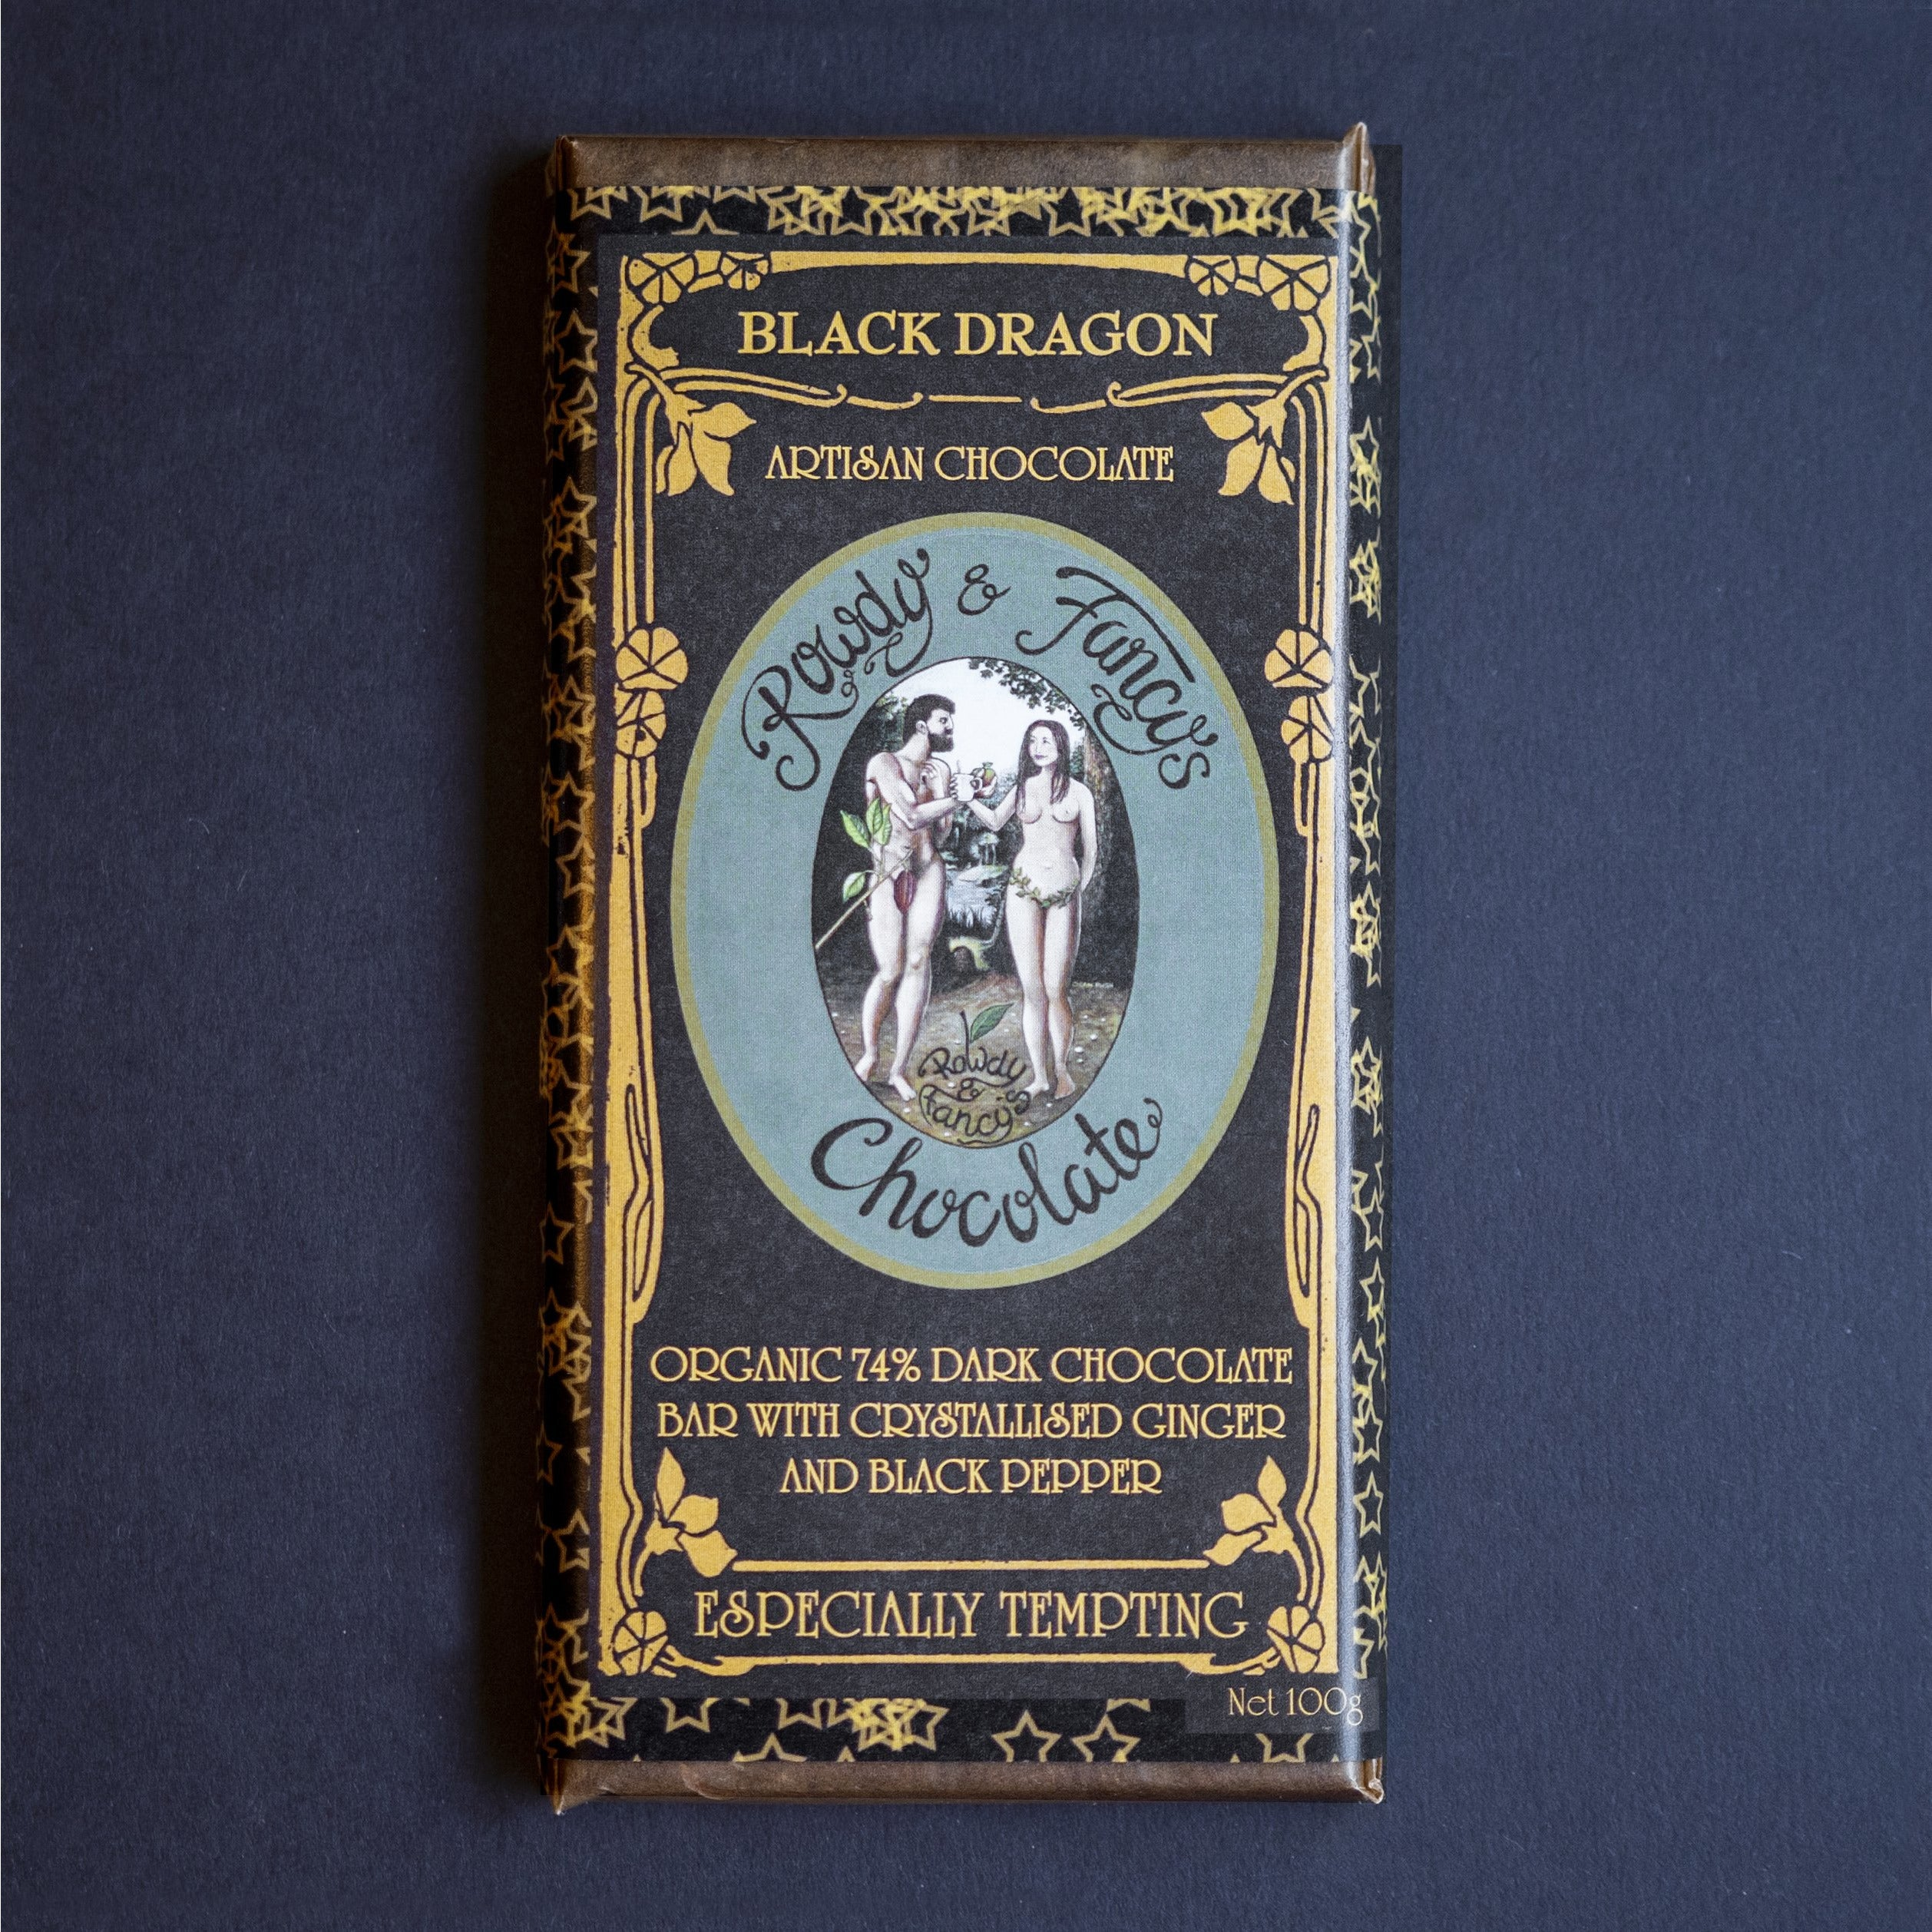 Image of Black-Dragon chocolate bar by chocolatier Rowdy_Fancy